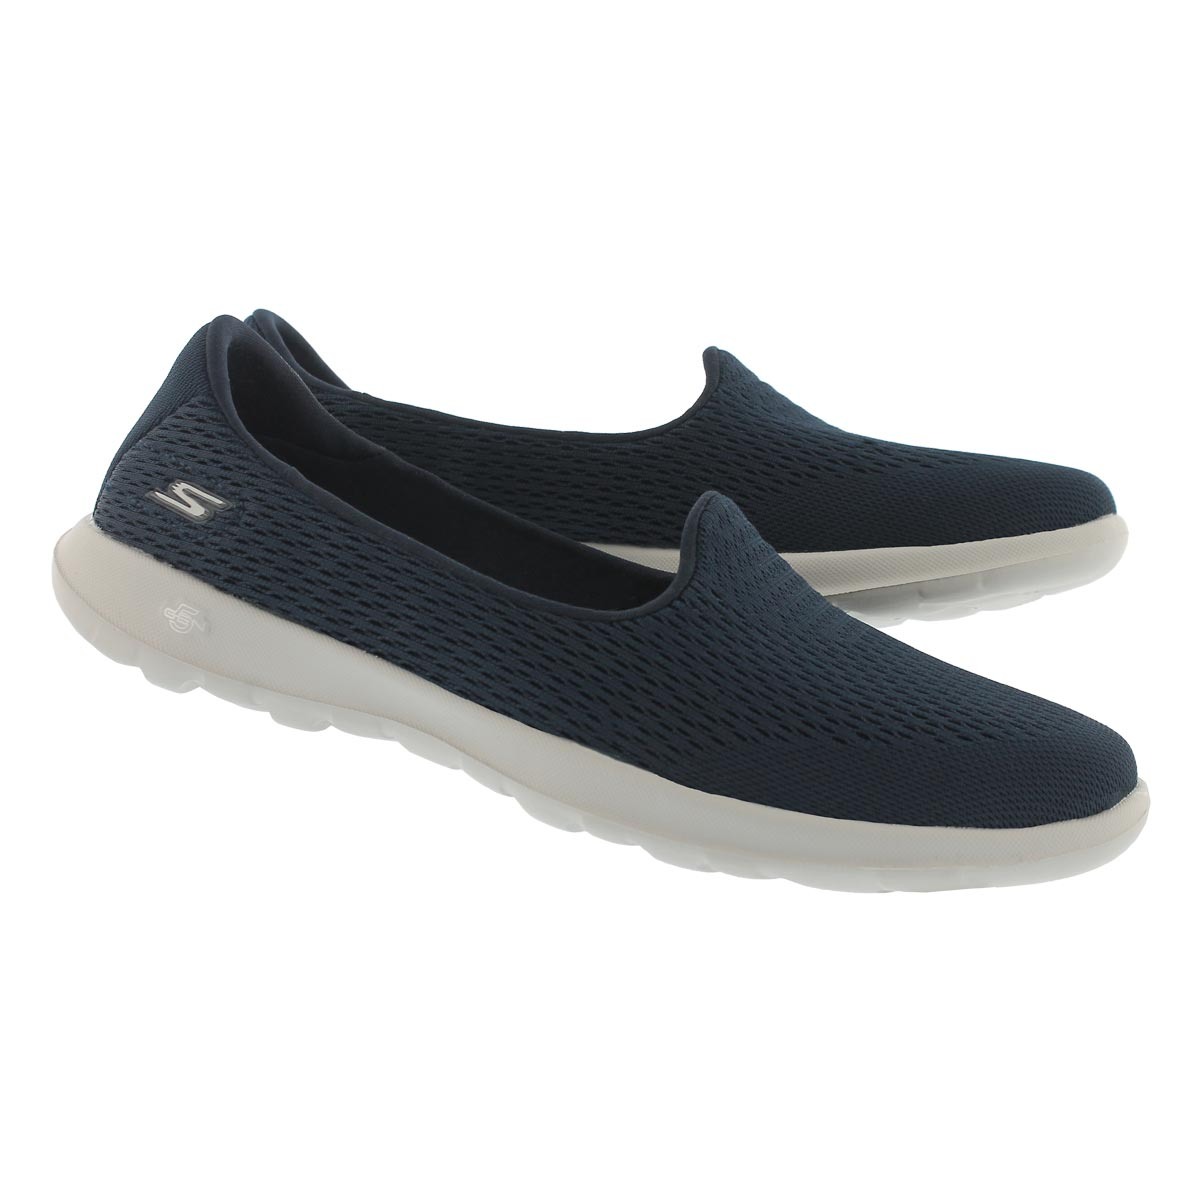 Lds GO Walk Lite nvy/gry slip on shoe